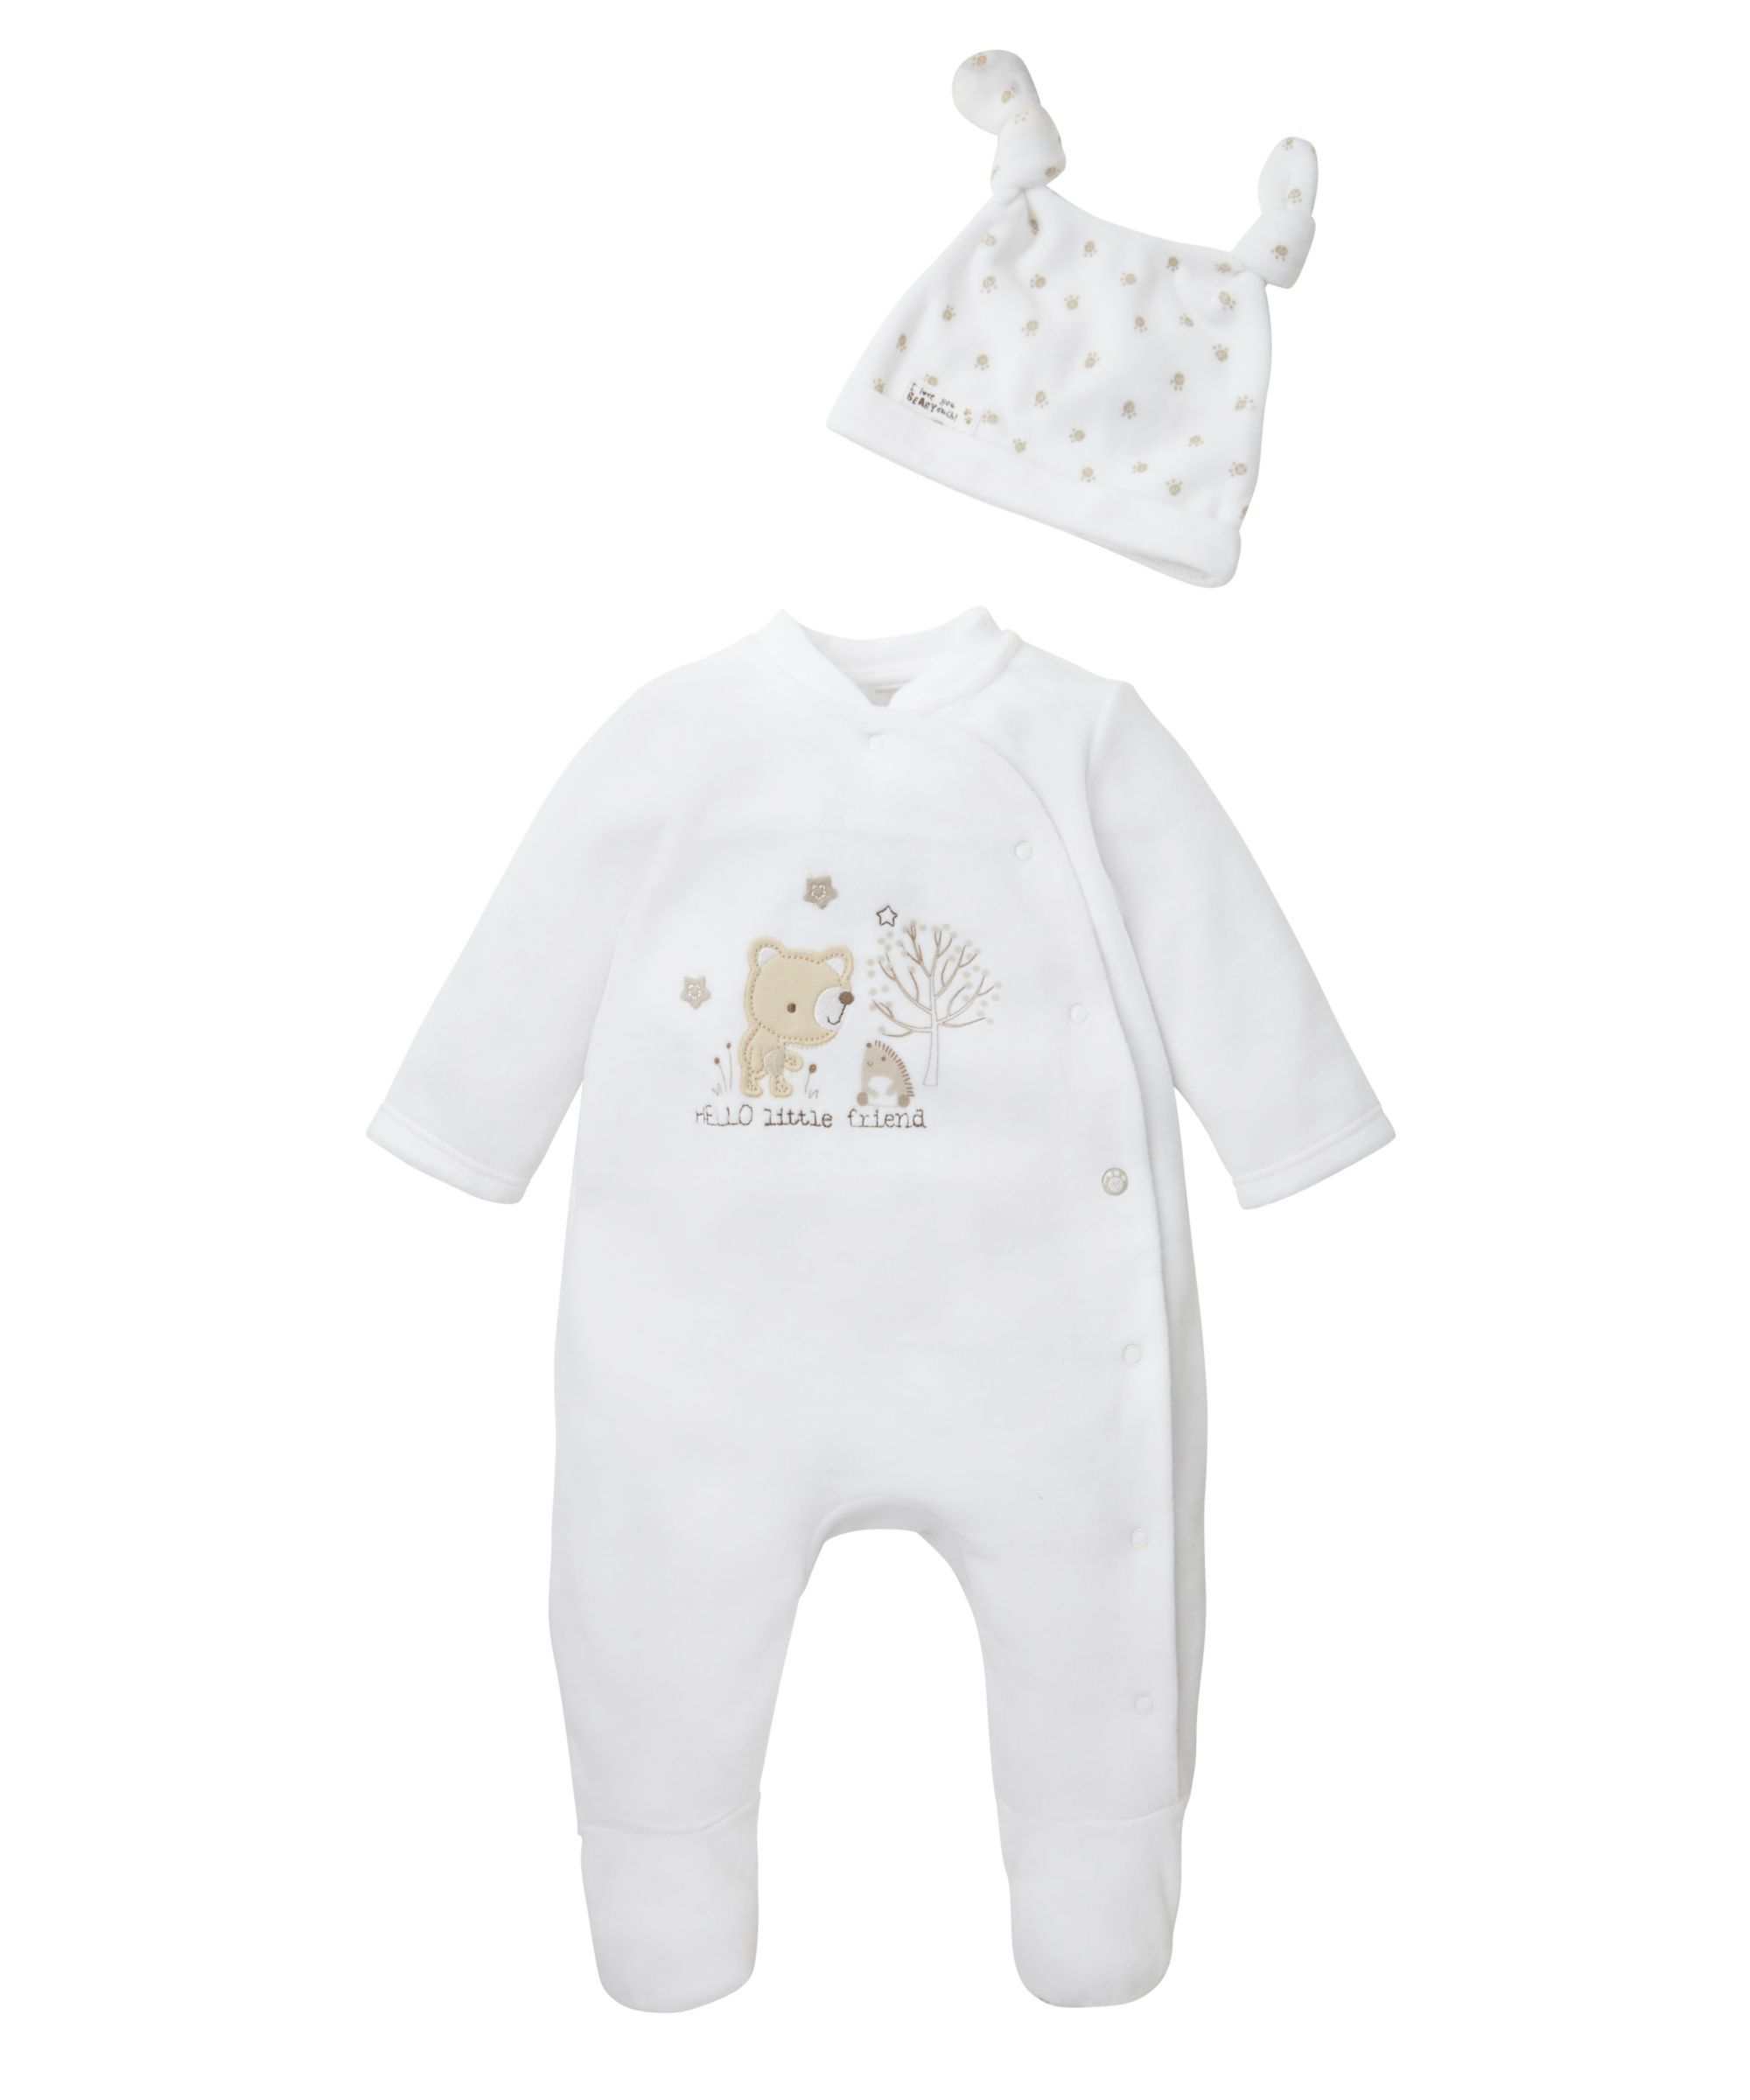 05edd823 Hello Little Friend All In One and Hat Set Mothercare Baby Clothes, Unisex Baby  Clothes